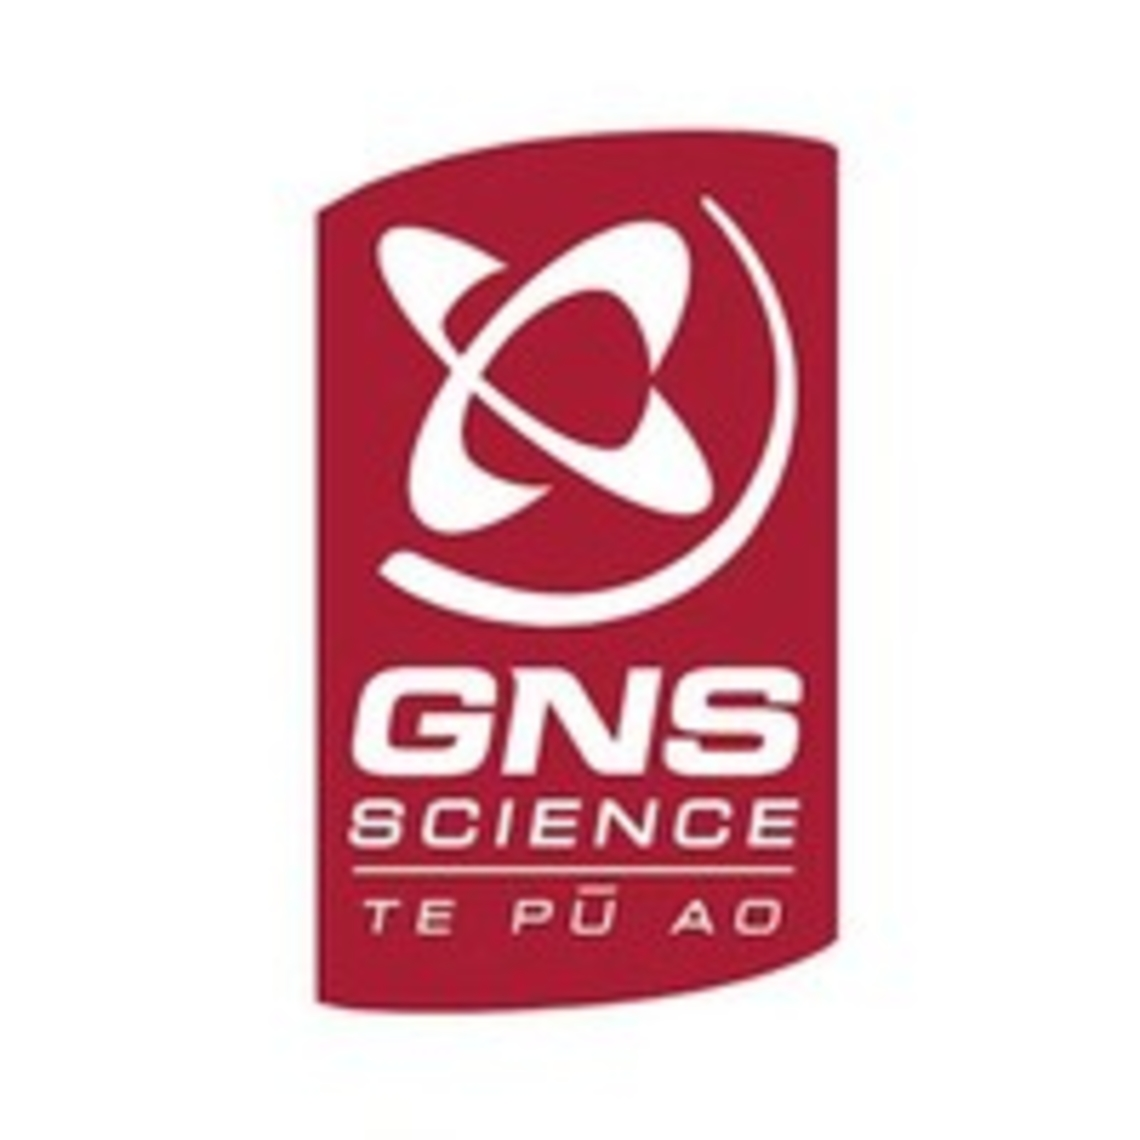 Geological and Nuclear Science